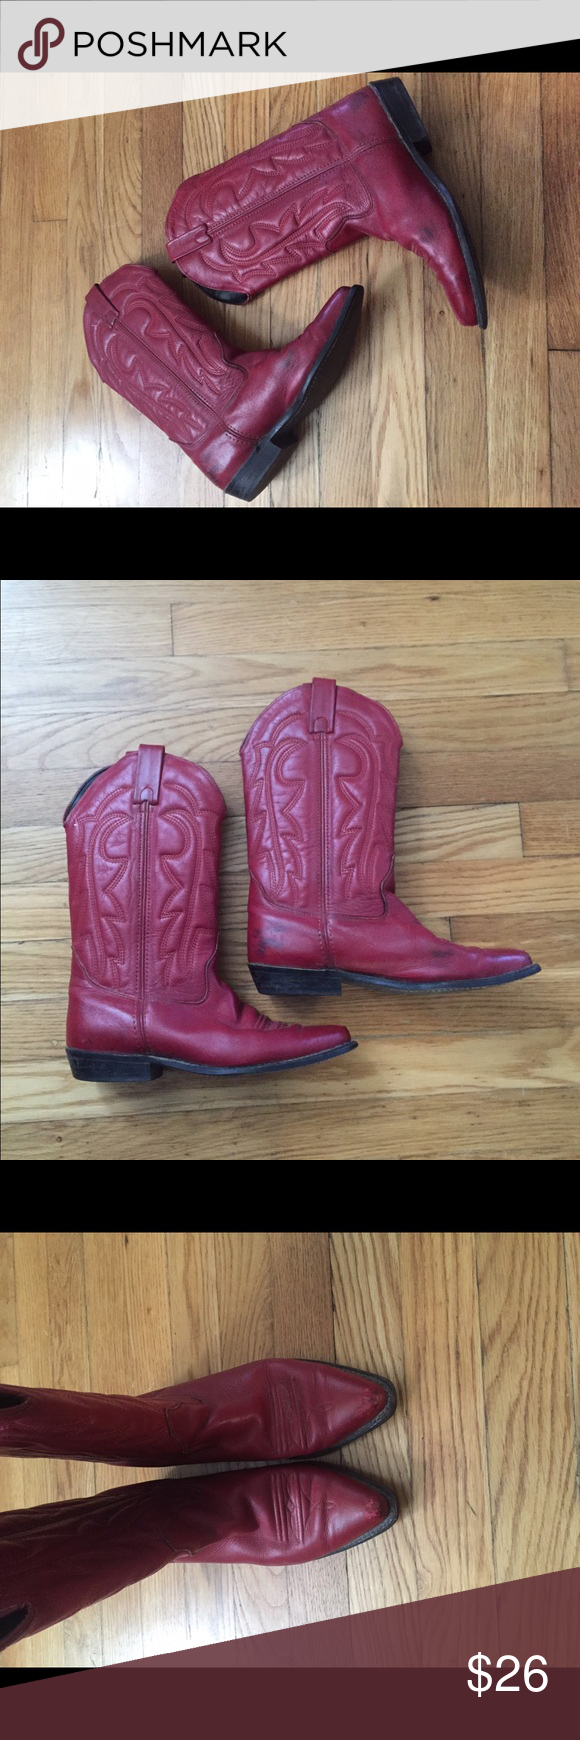 Vintage red cowboy boots Vintage red cowboy boots, they do have plenty of scuffs but still have many miles left to go Shoes